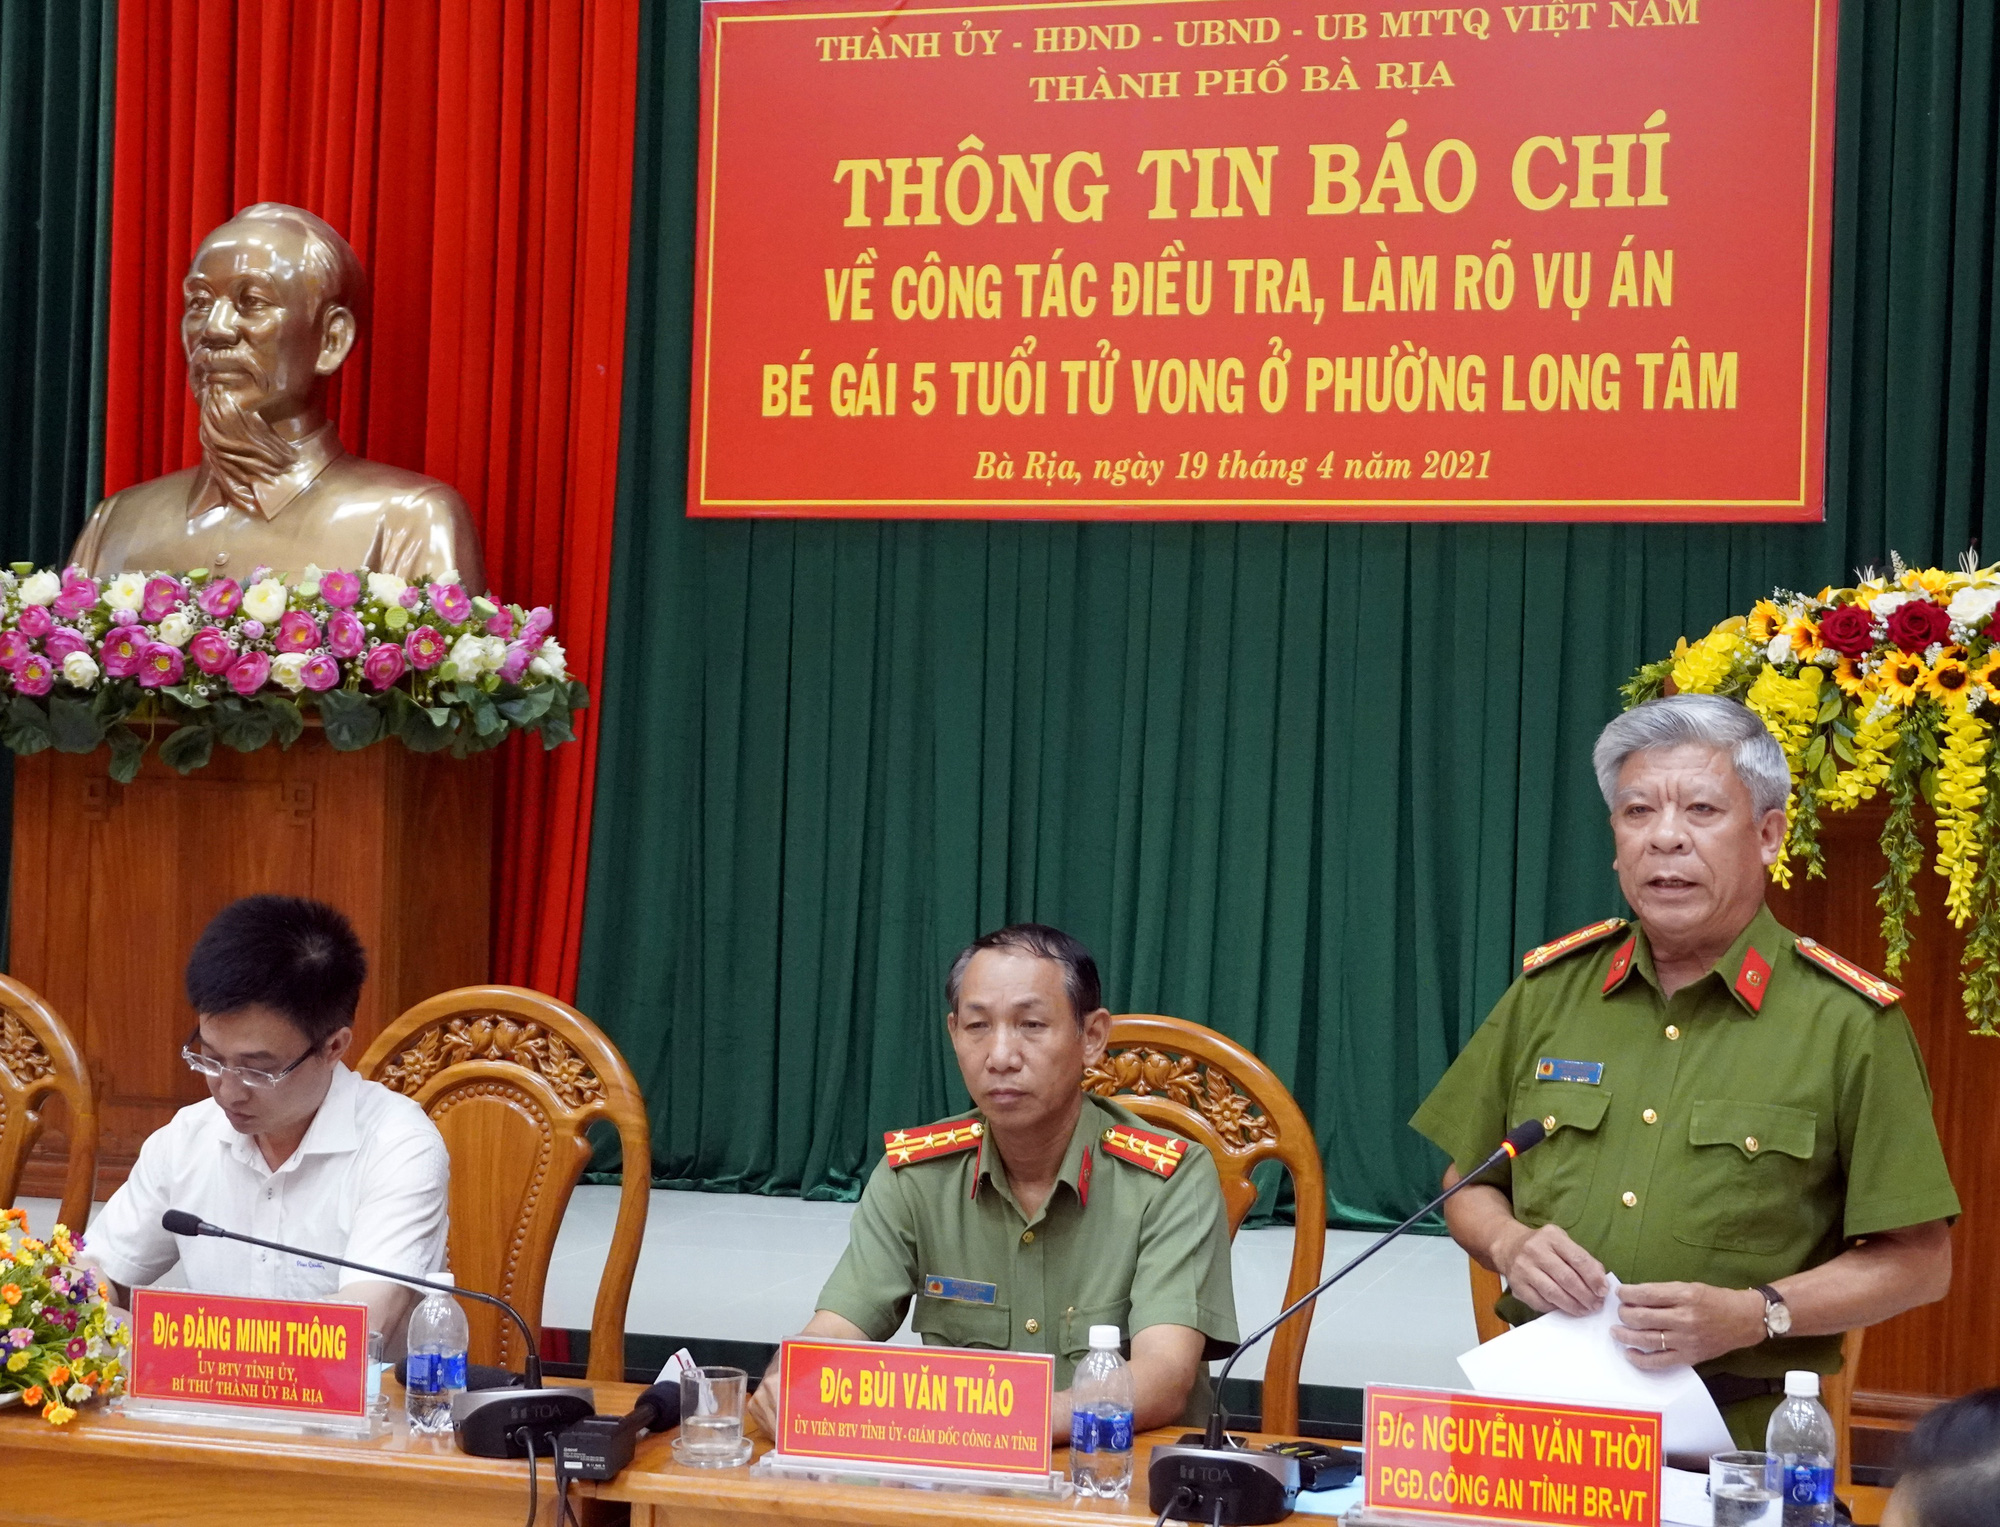 Colonel Nguyen Van Thoi, director of the Ba Ria - Vung Tau Department of Public Security, speaks at a press conference on the case on April 19, 2021. Photo: D.H. / Tuoi Tre